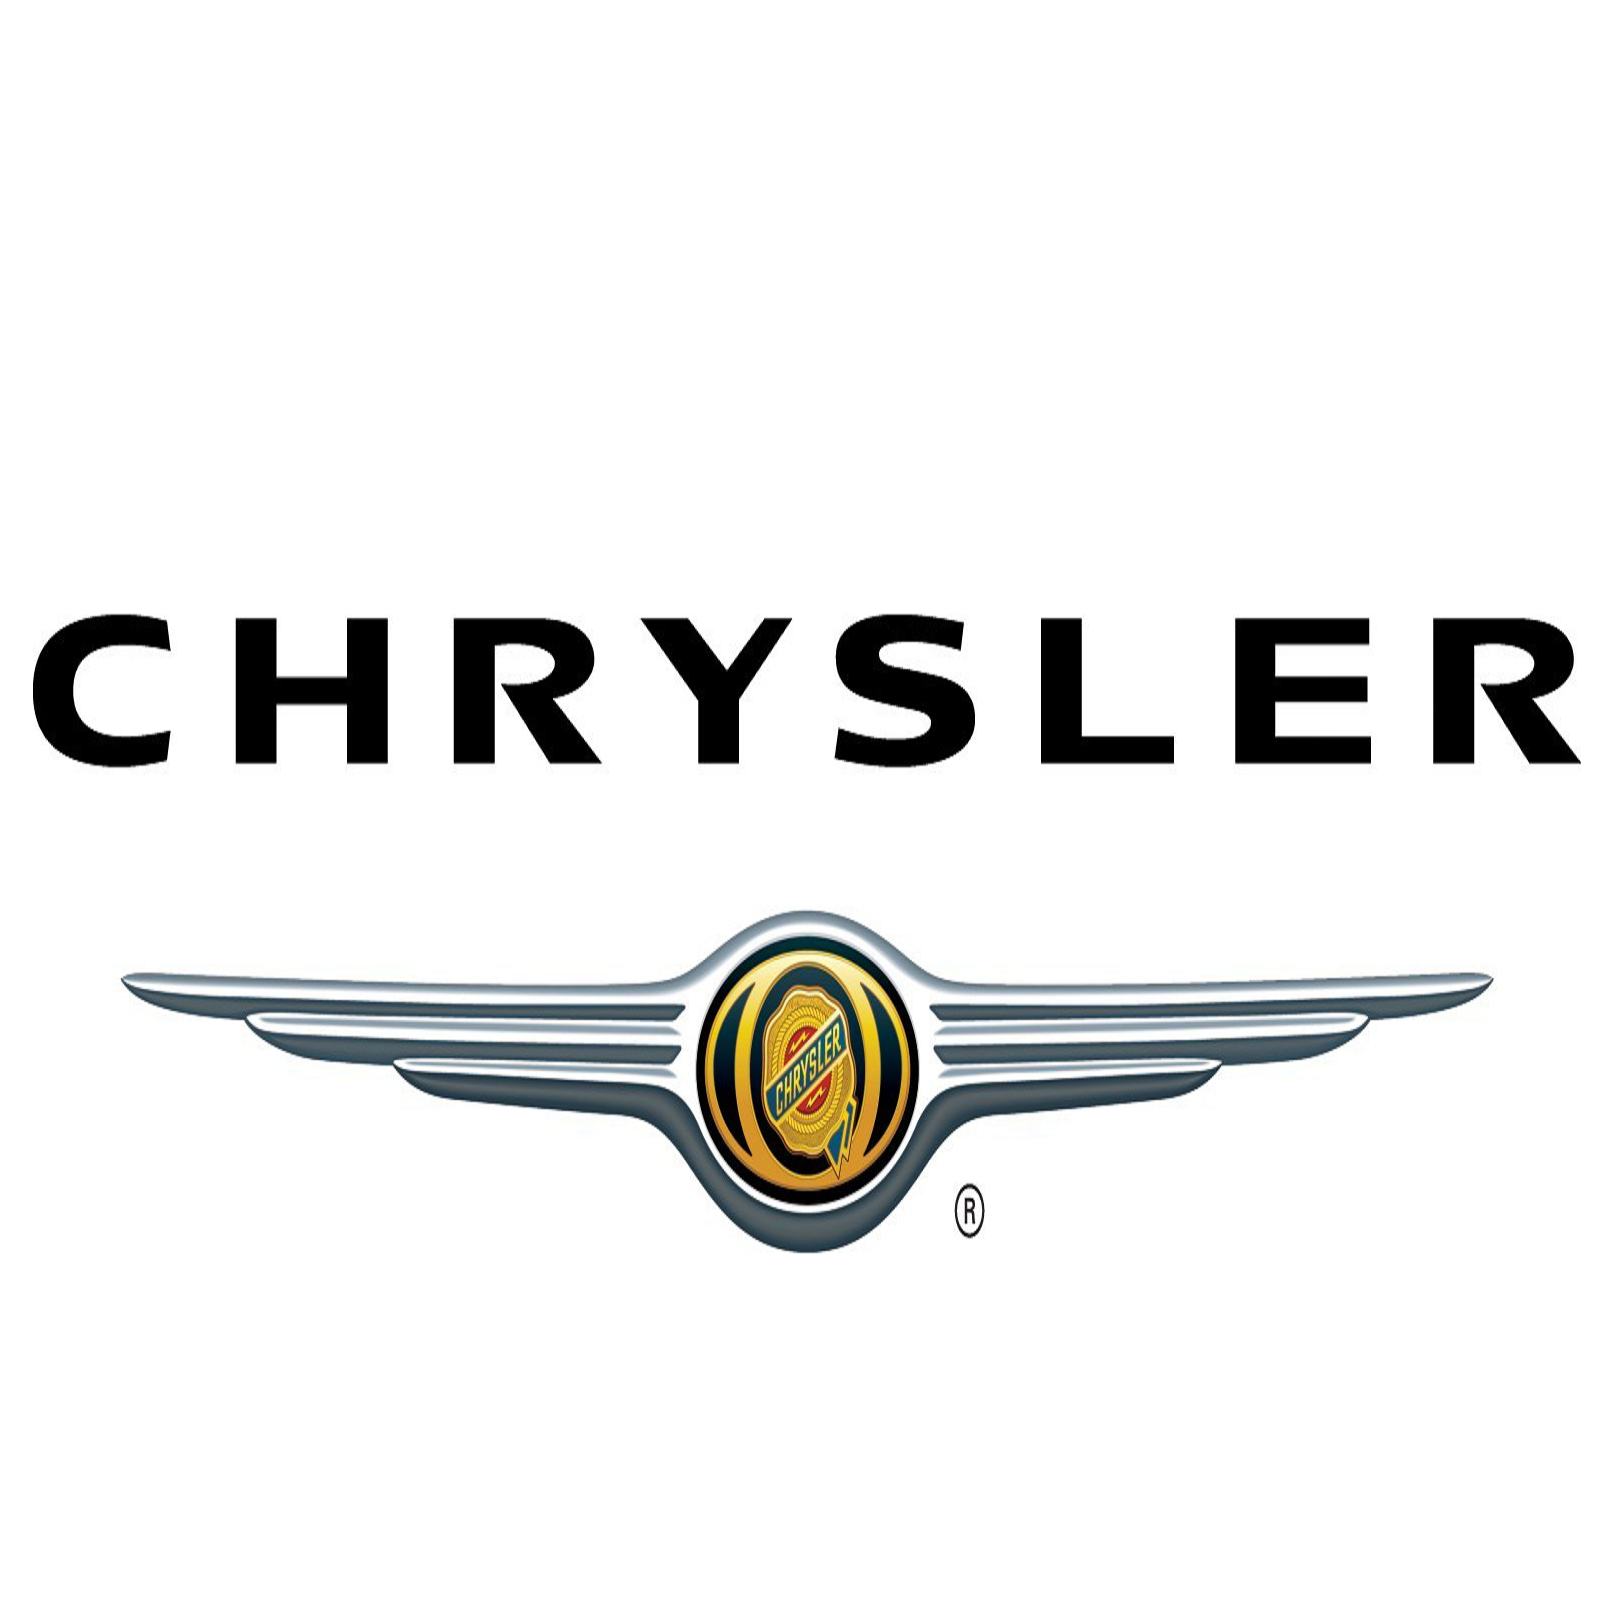 chrysler auto logo with - photo #9